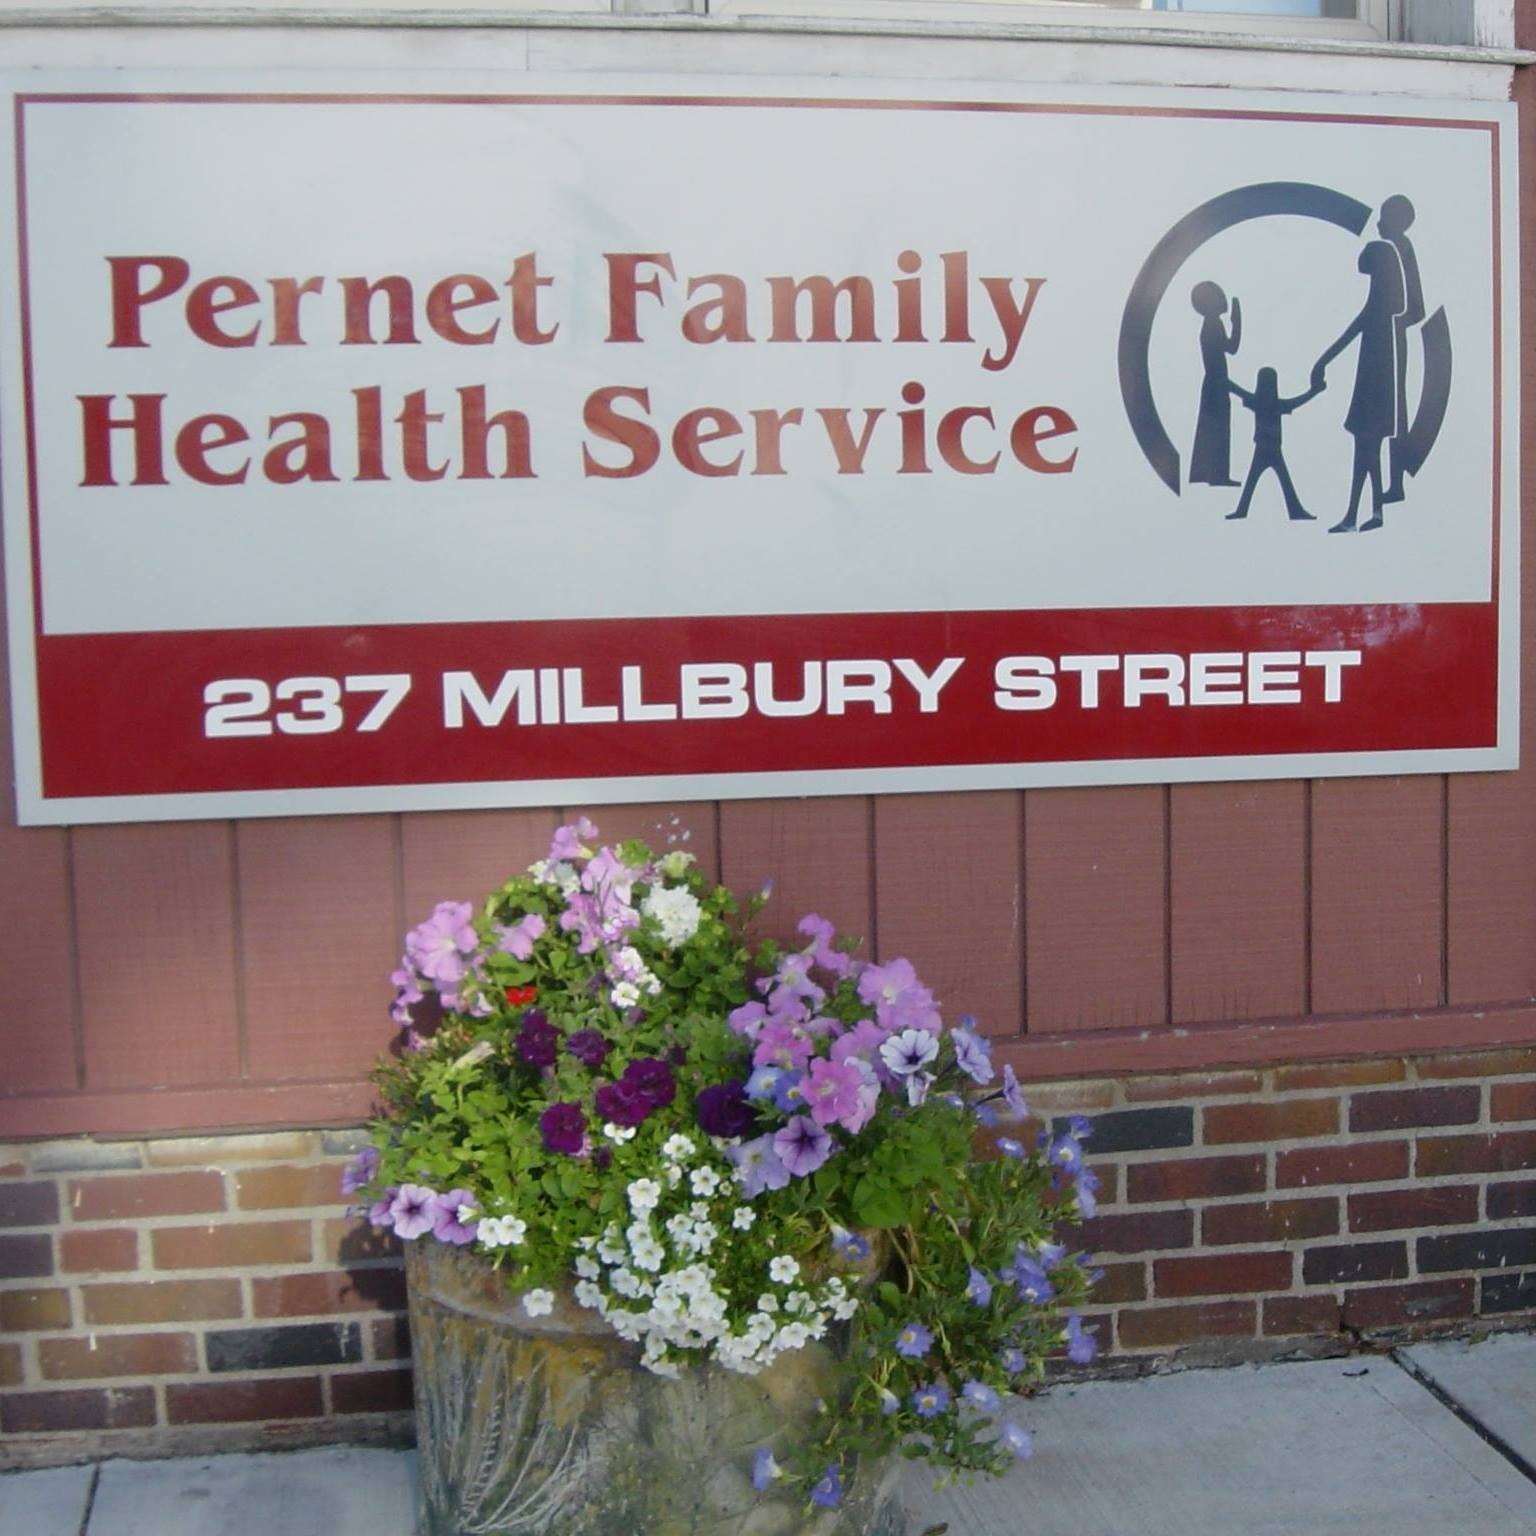 Pernet Family Health Service, Inc.